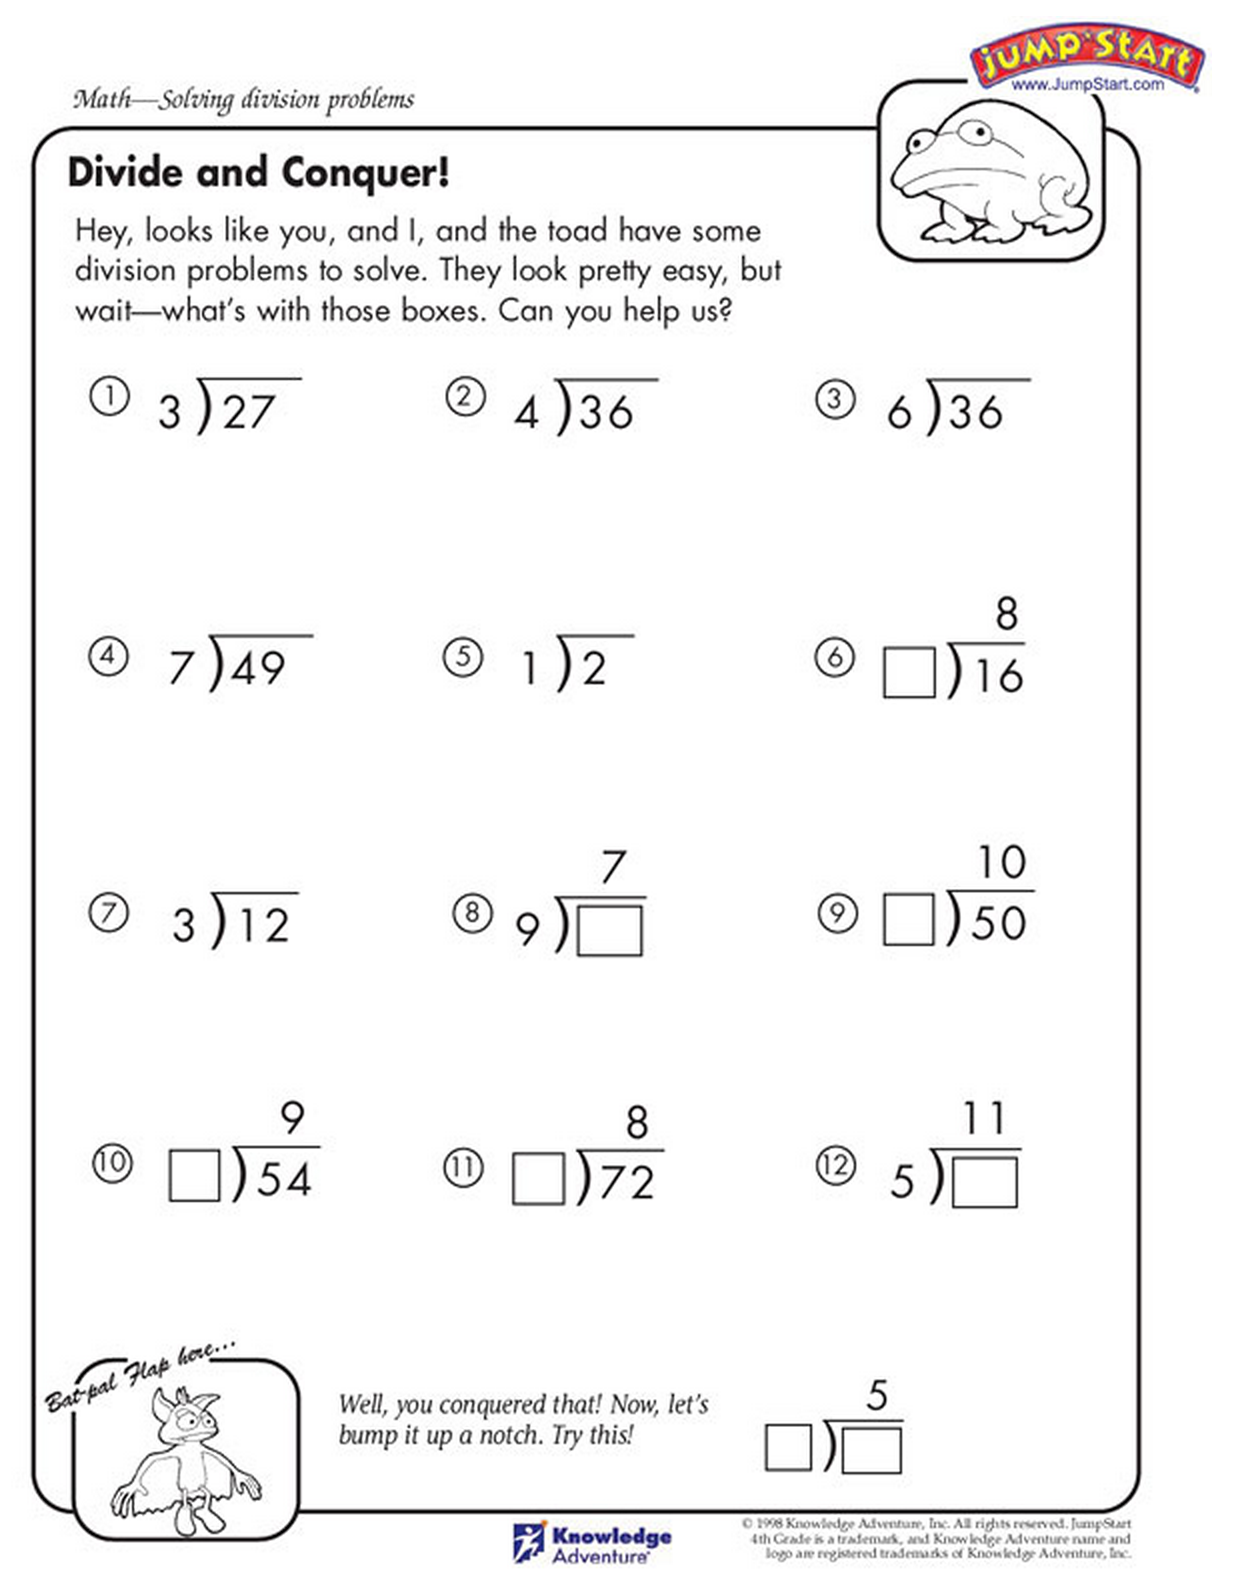 Math Problems 4th Grade Division